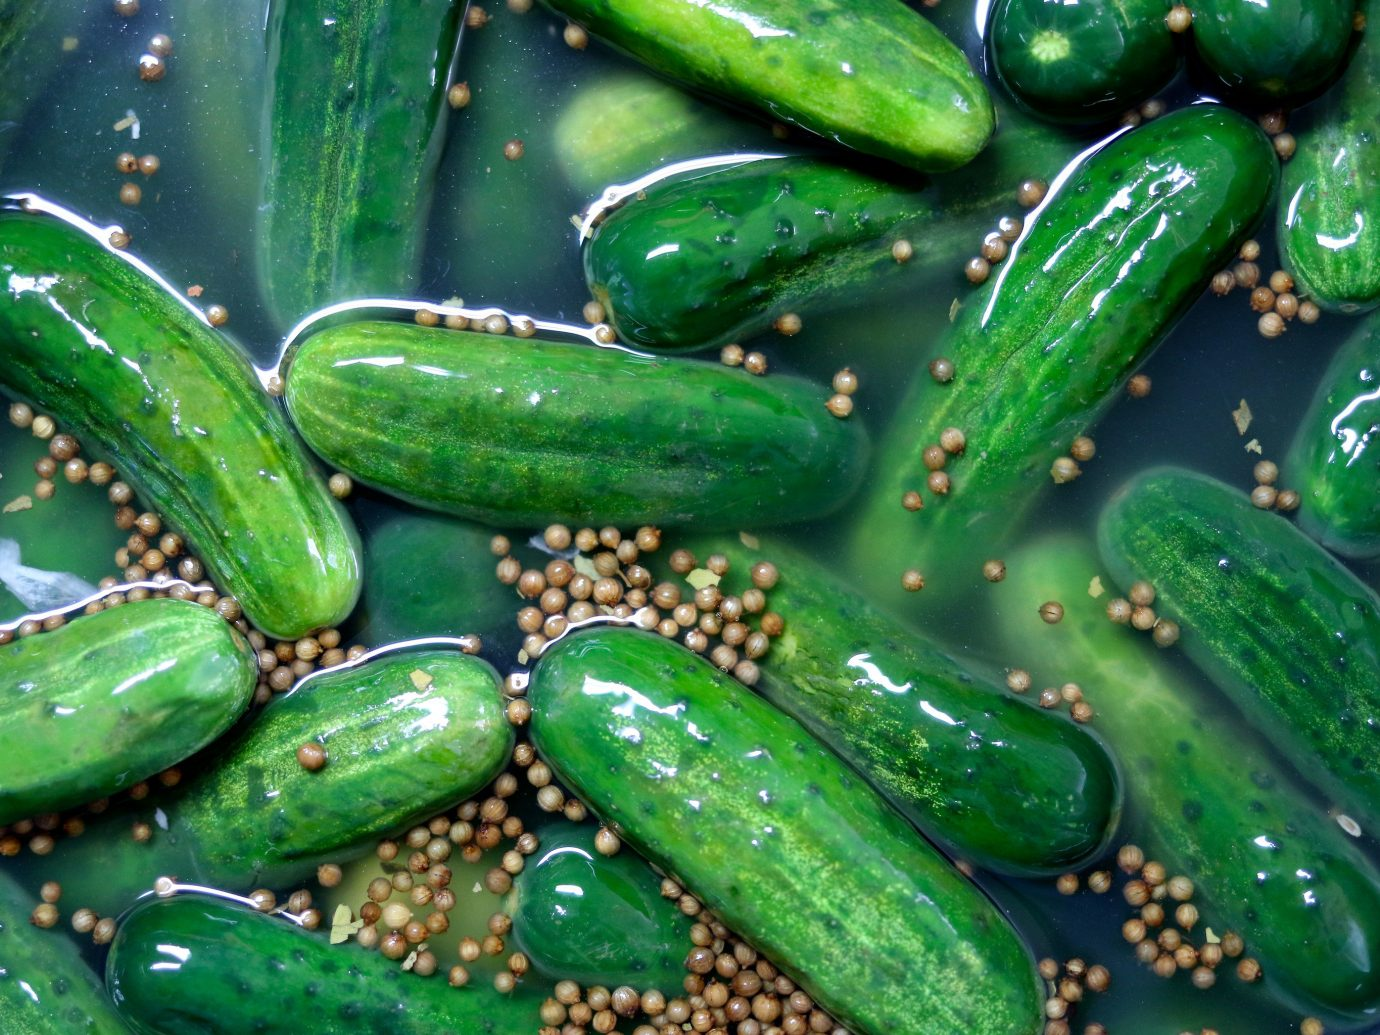 Budget green food cucumber plant produce vegetable land plant flowering plant cucumber gourd and melon family jalapeño gourd flower different arranged several